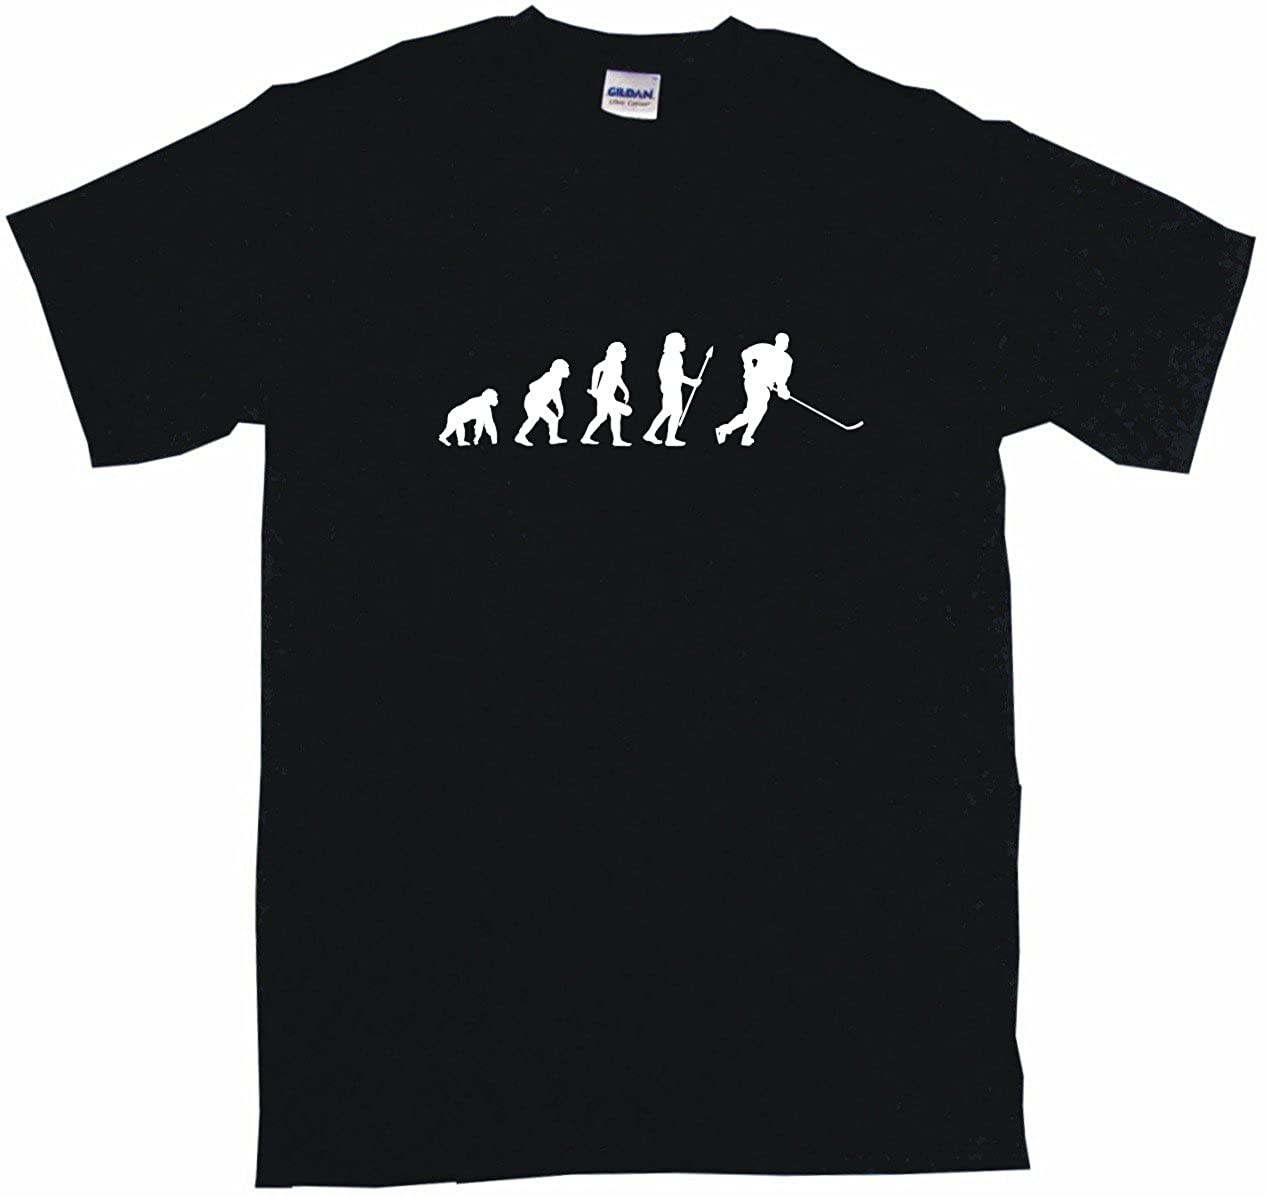 Evolution of Humans Hockey Player Logo Big Boy's Kids Tee Shirt